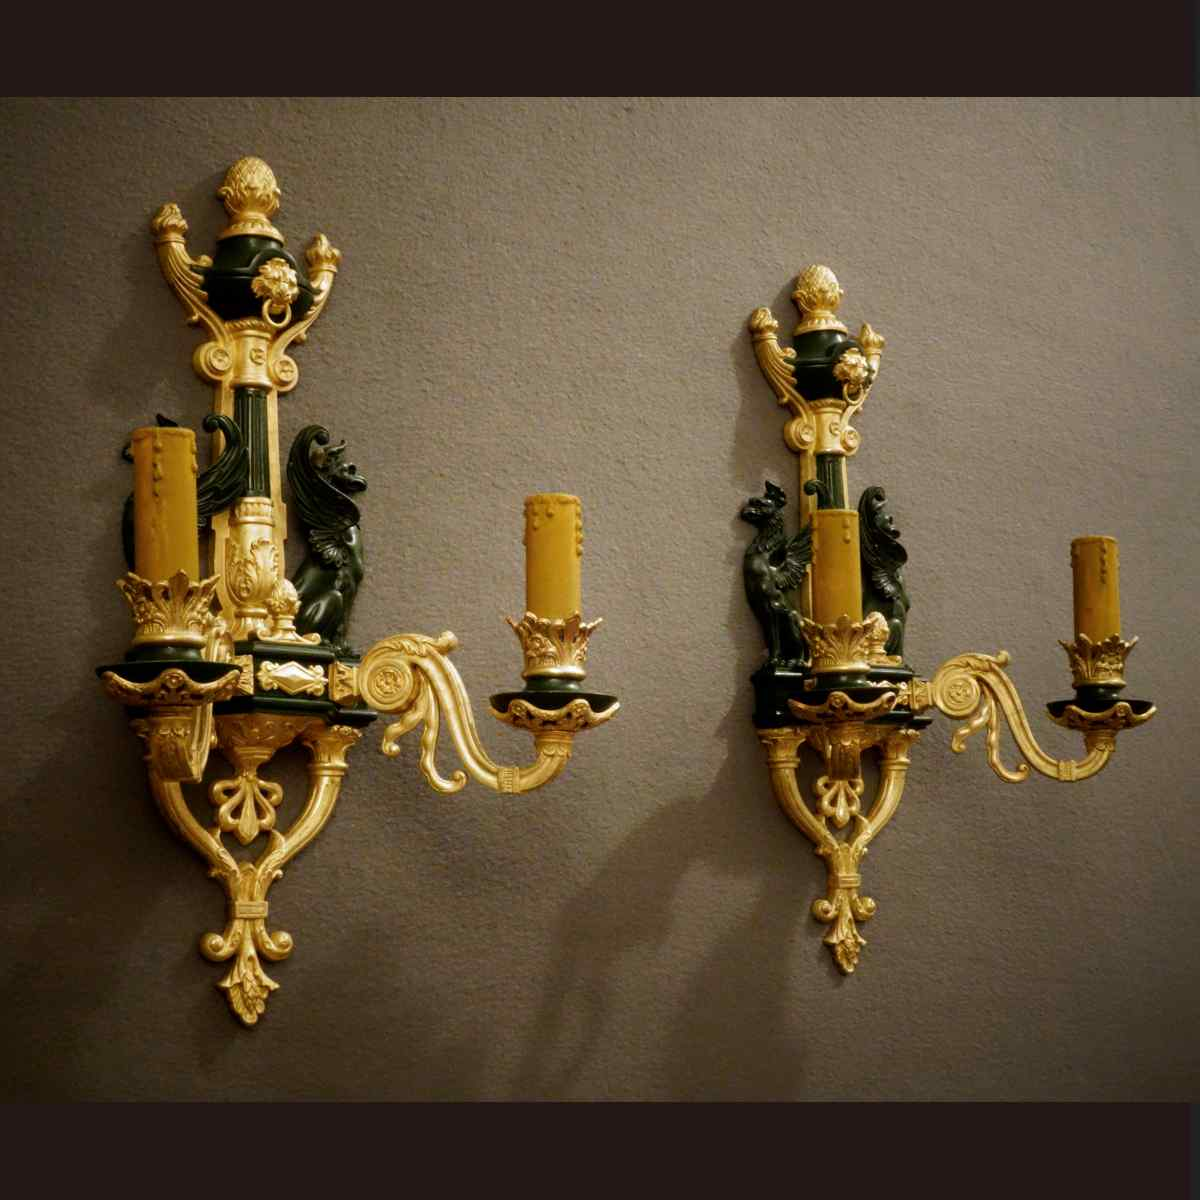 Pair Of Empire Style Wall Lights 19th